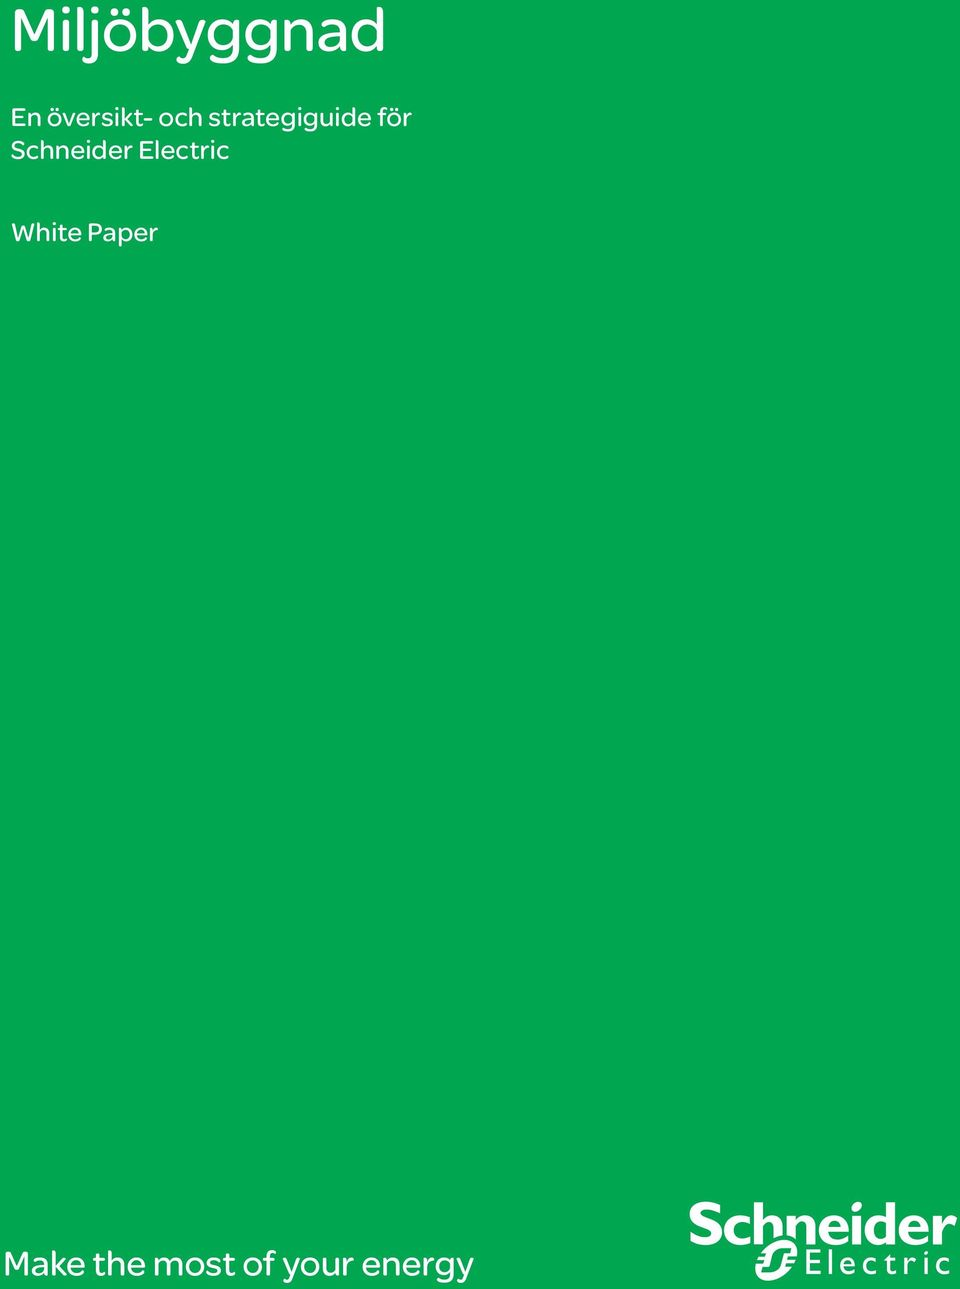 Schneider Electric White